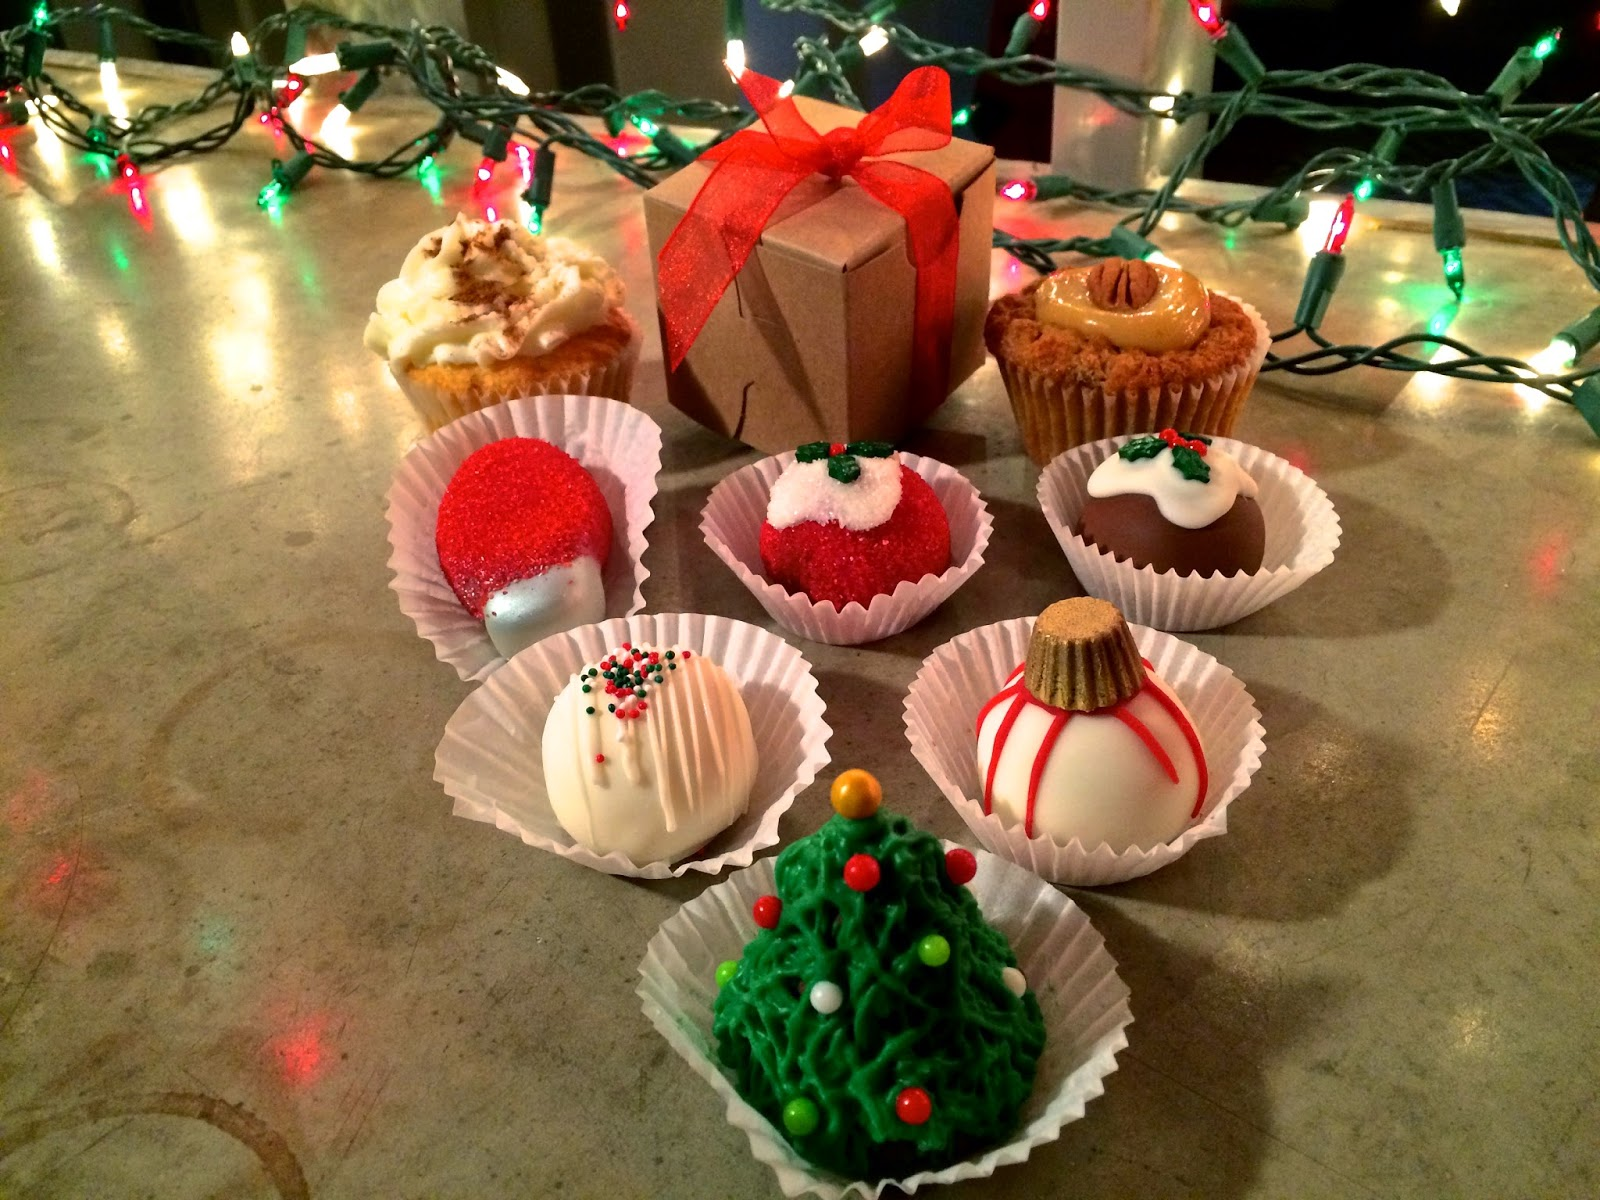 Pictured are Cupcake Allie's Pecan Pie Cupcake, Eggnog Cupcake, and Red Velvet, Vanilla, & Chocolate Cake Bites